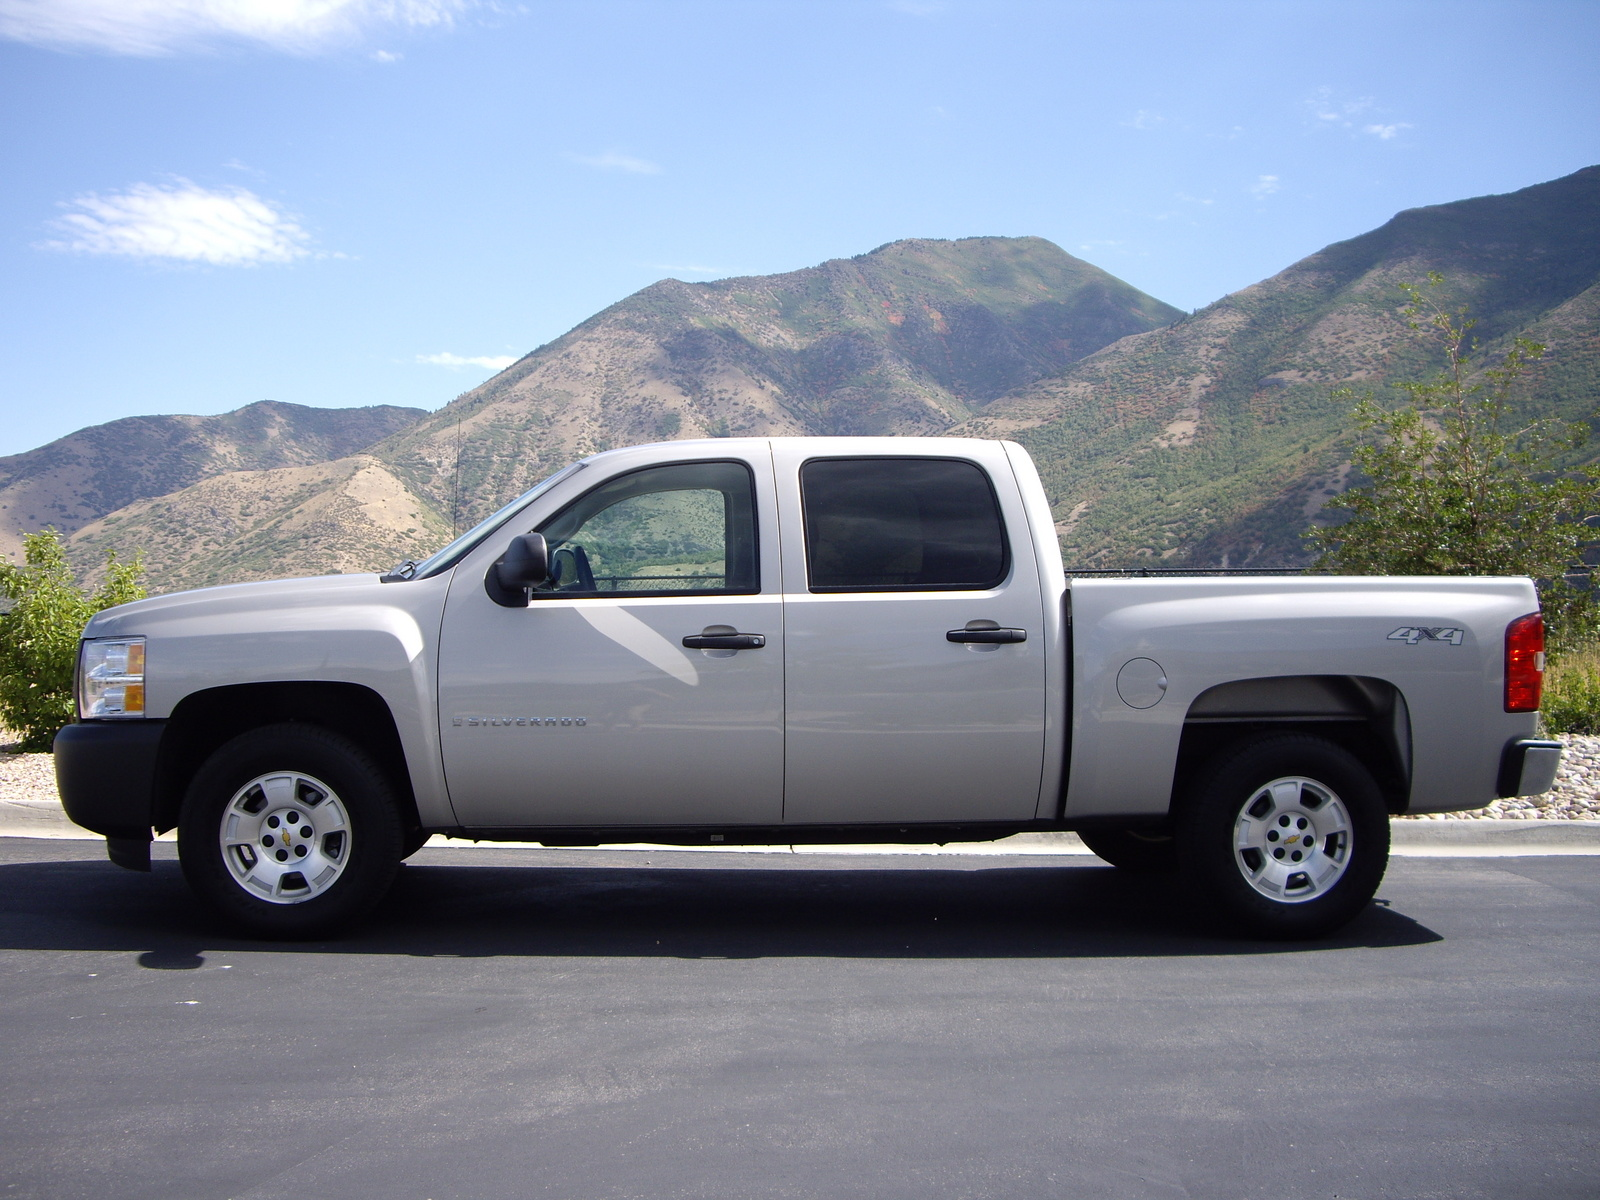 2009 chevrolet silverado 1500 information and photos momentcar. Black Bedroom Furniture Sets. Home Design Ideas